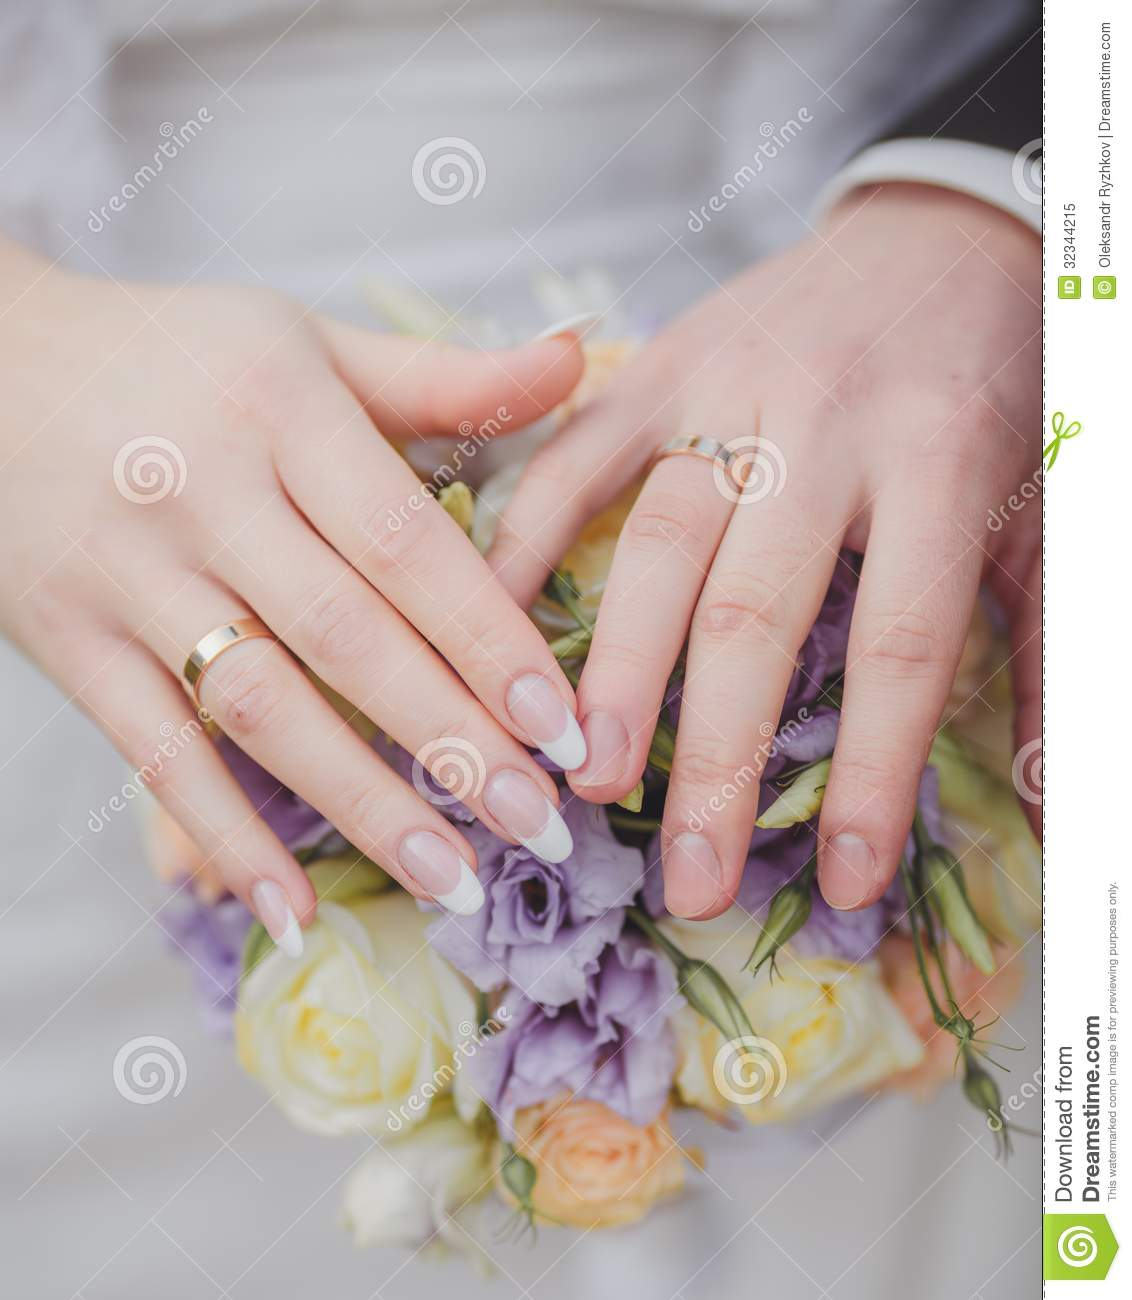 Hands And Rings On The Wedding Bouquet Stock Image - Image of ...